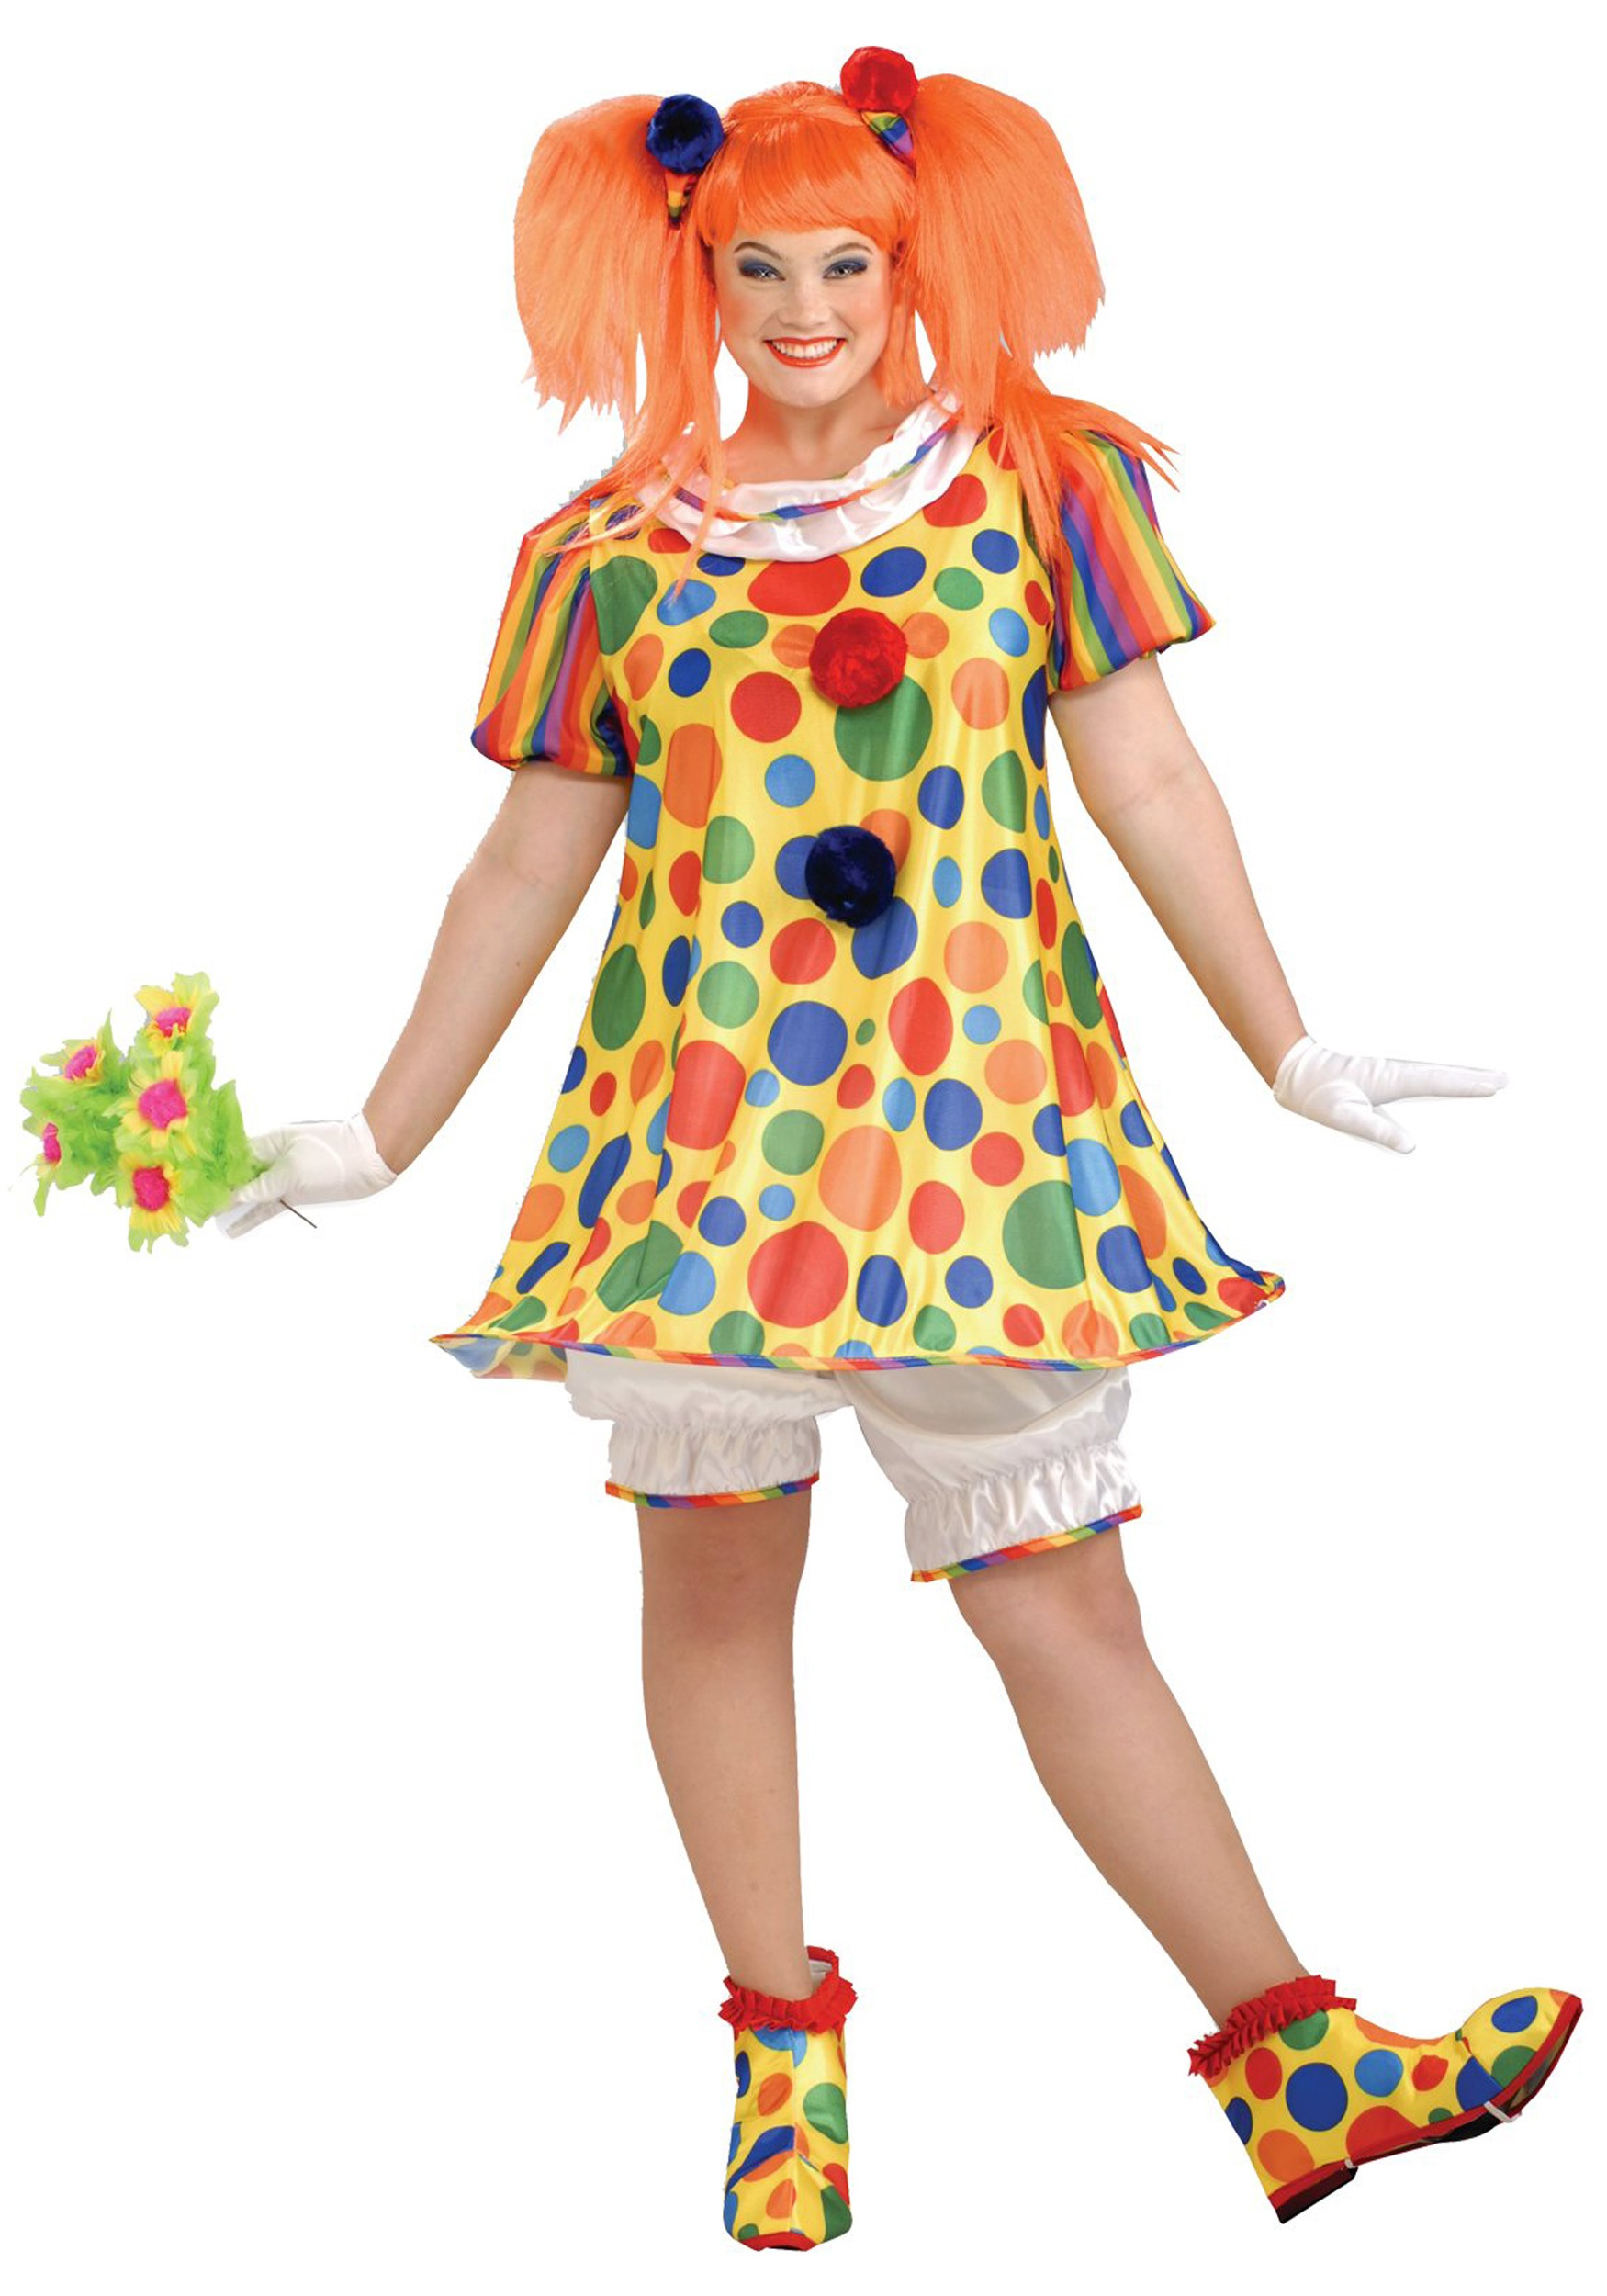 Plus Size Giggles the Clown Costume  sc 1 st  Halloween Costumes & Clown Costumes - Adult Kids Clown Costume for Halloween